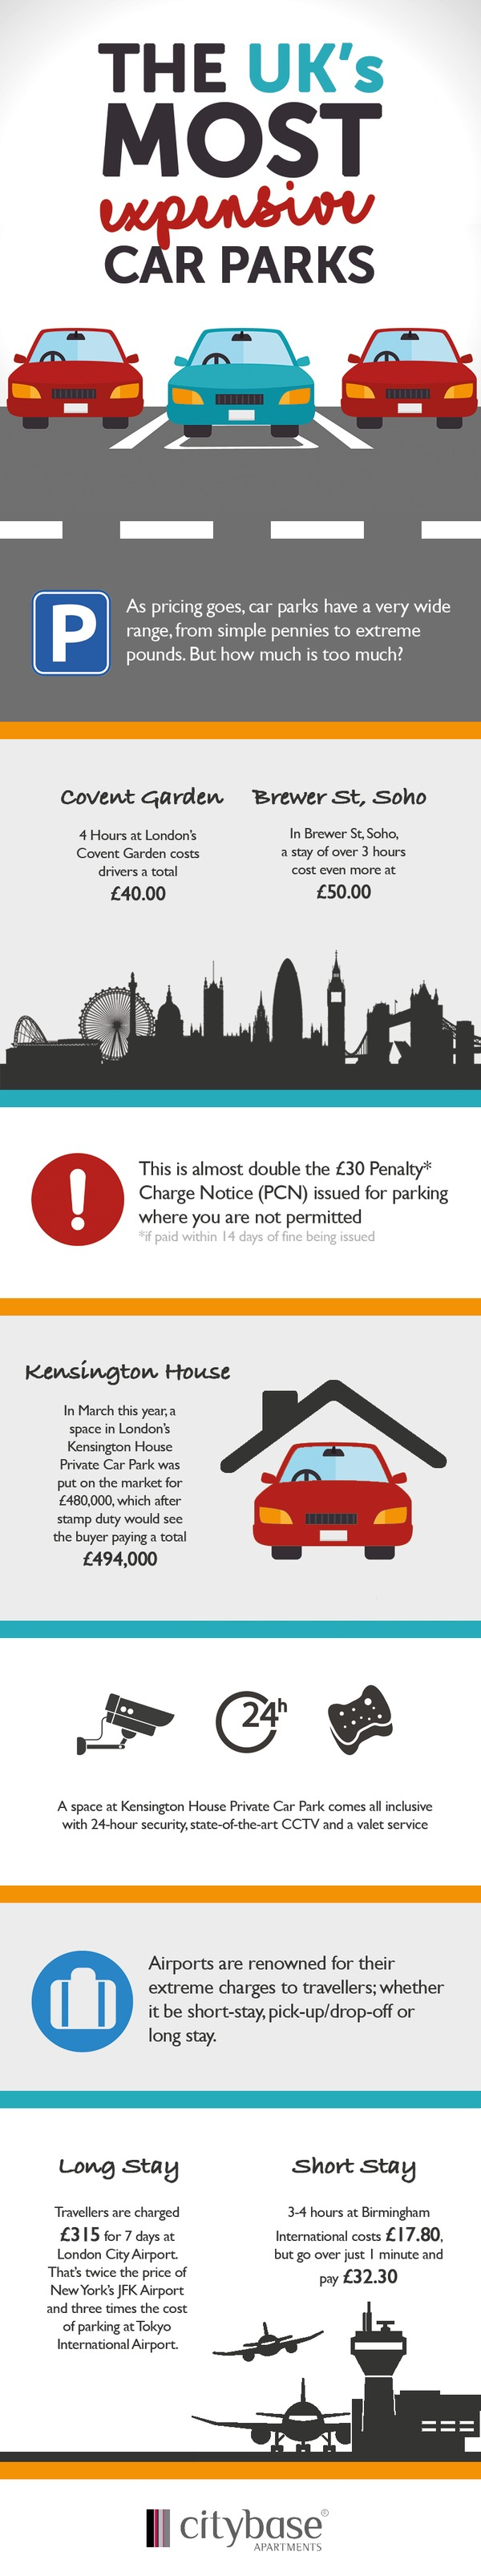 The UK's Most Expensive Car Parks